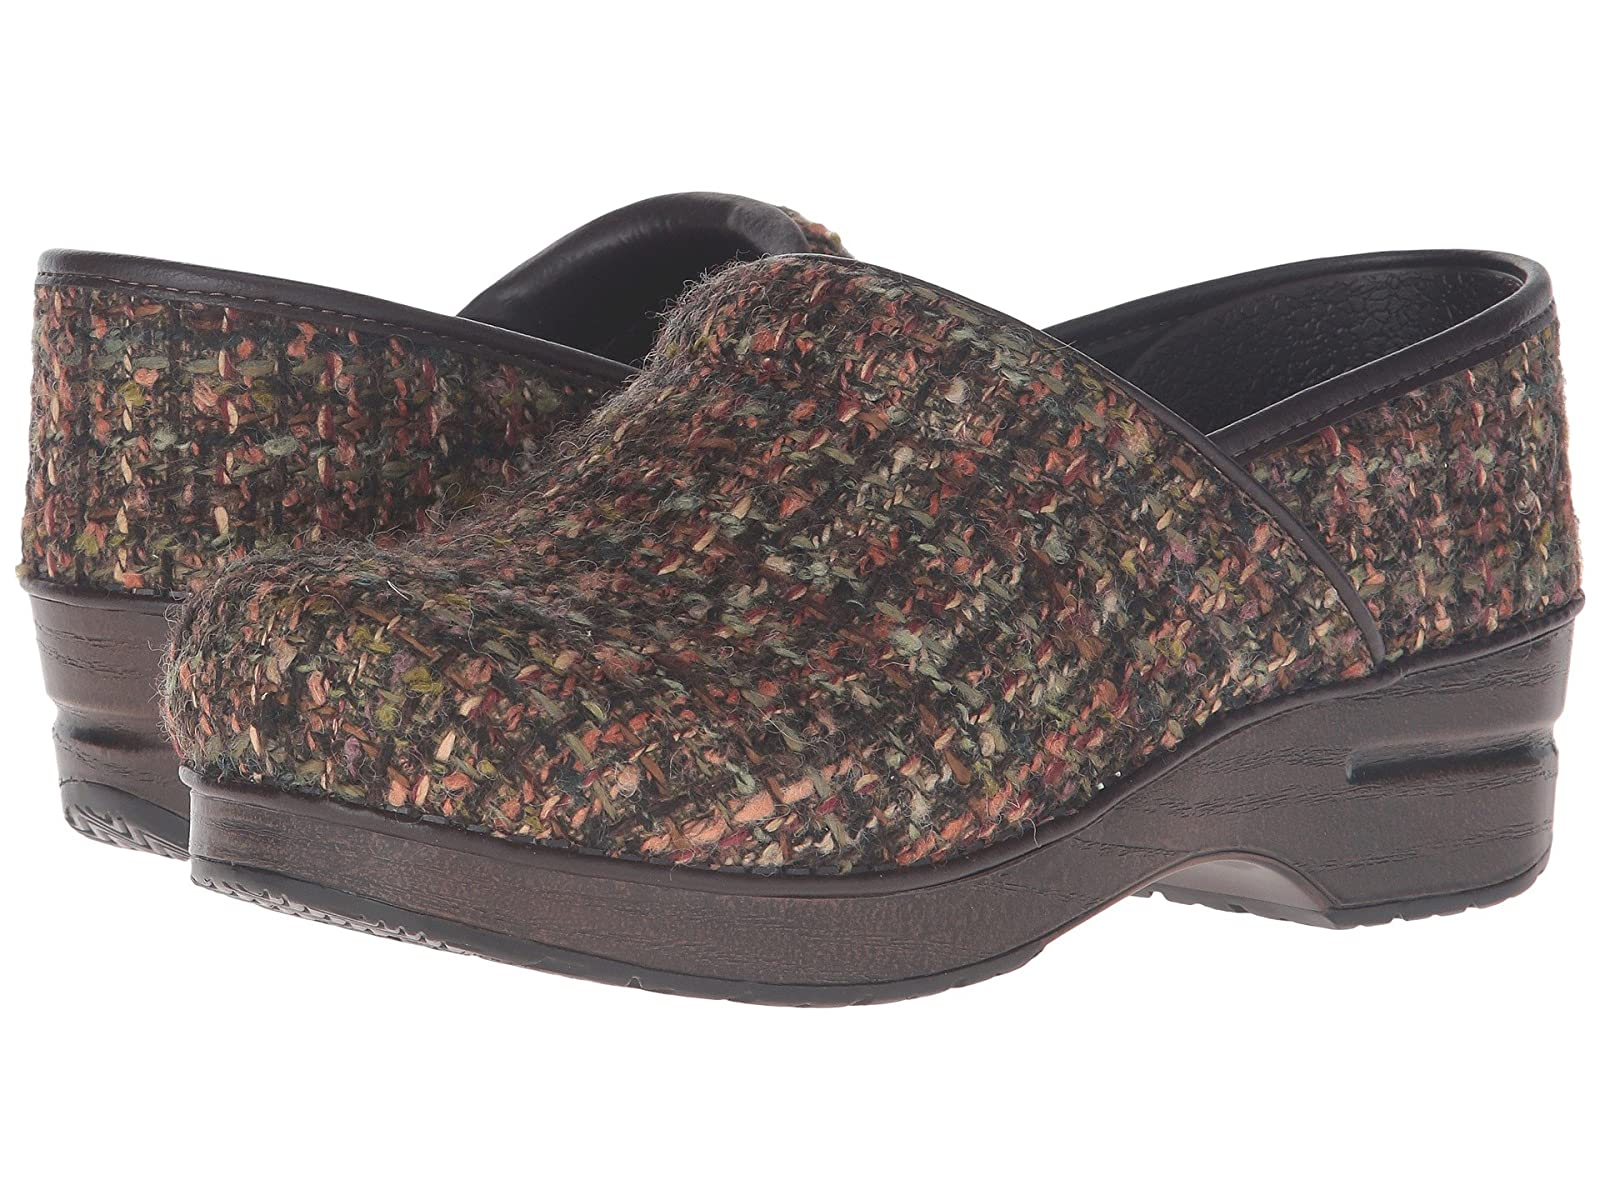 Dansko Fabric ProCheap and distinctive eye-catching shoes